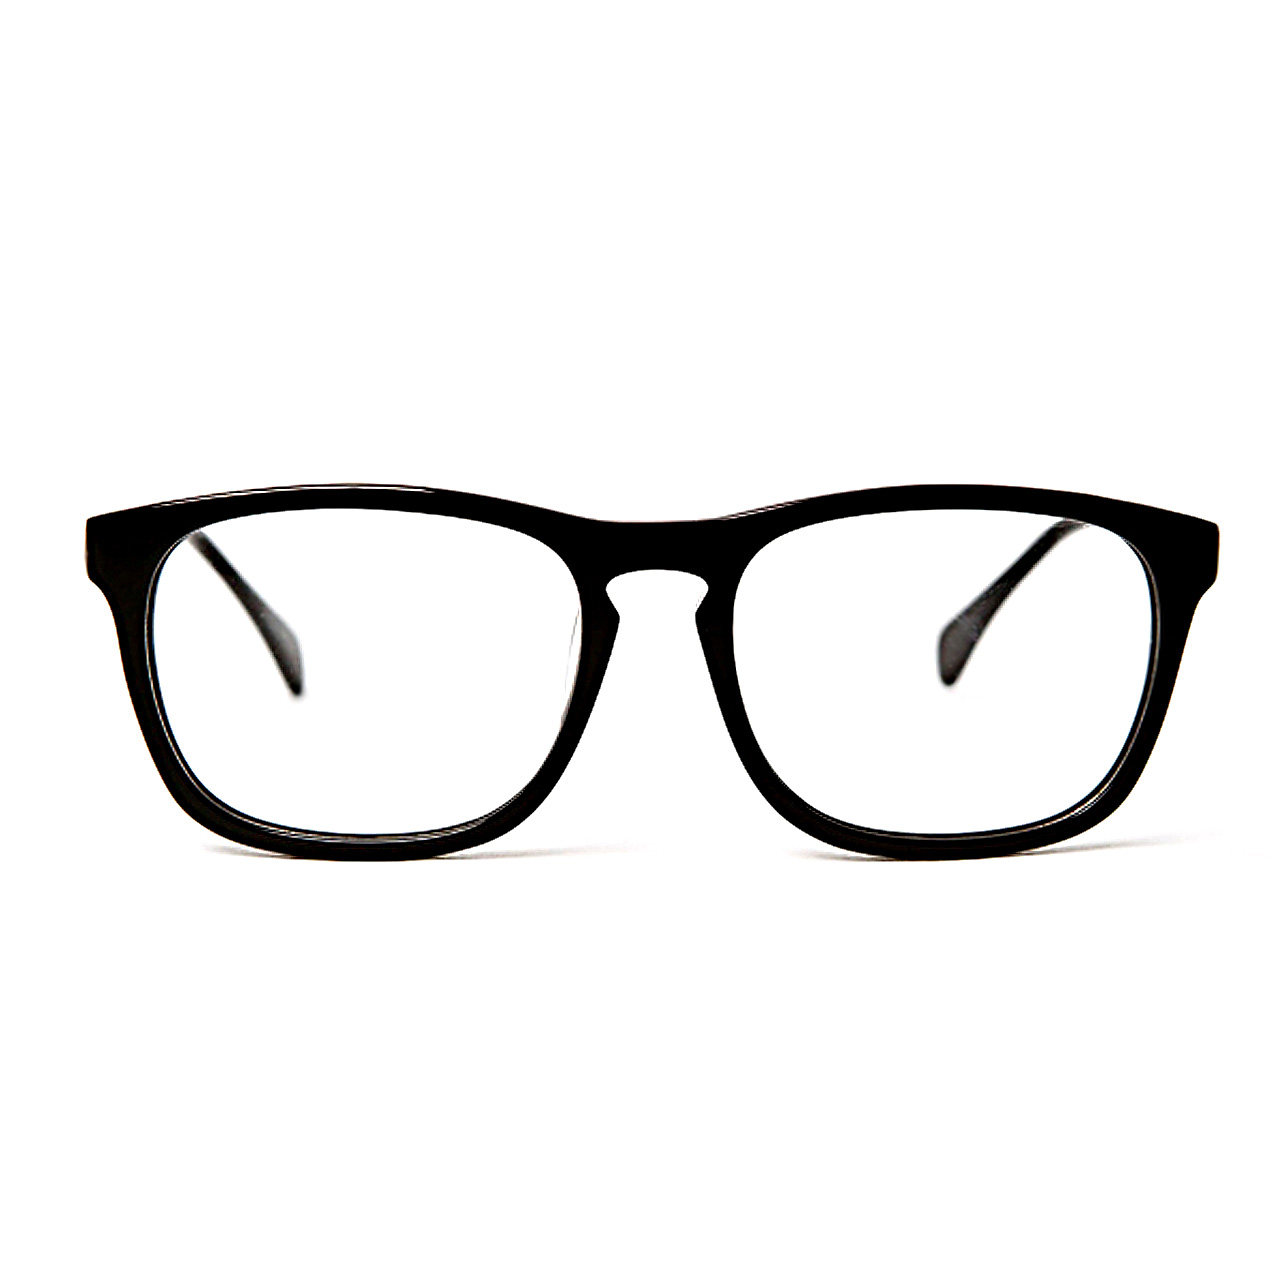 undefeated x thoughts on high fashion Geek Eyewear® RX Eyeglasses style Geek 116 | Hipster Collection ...